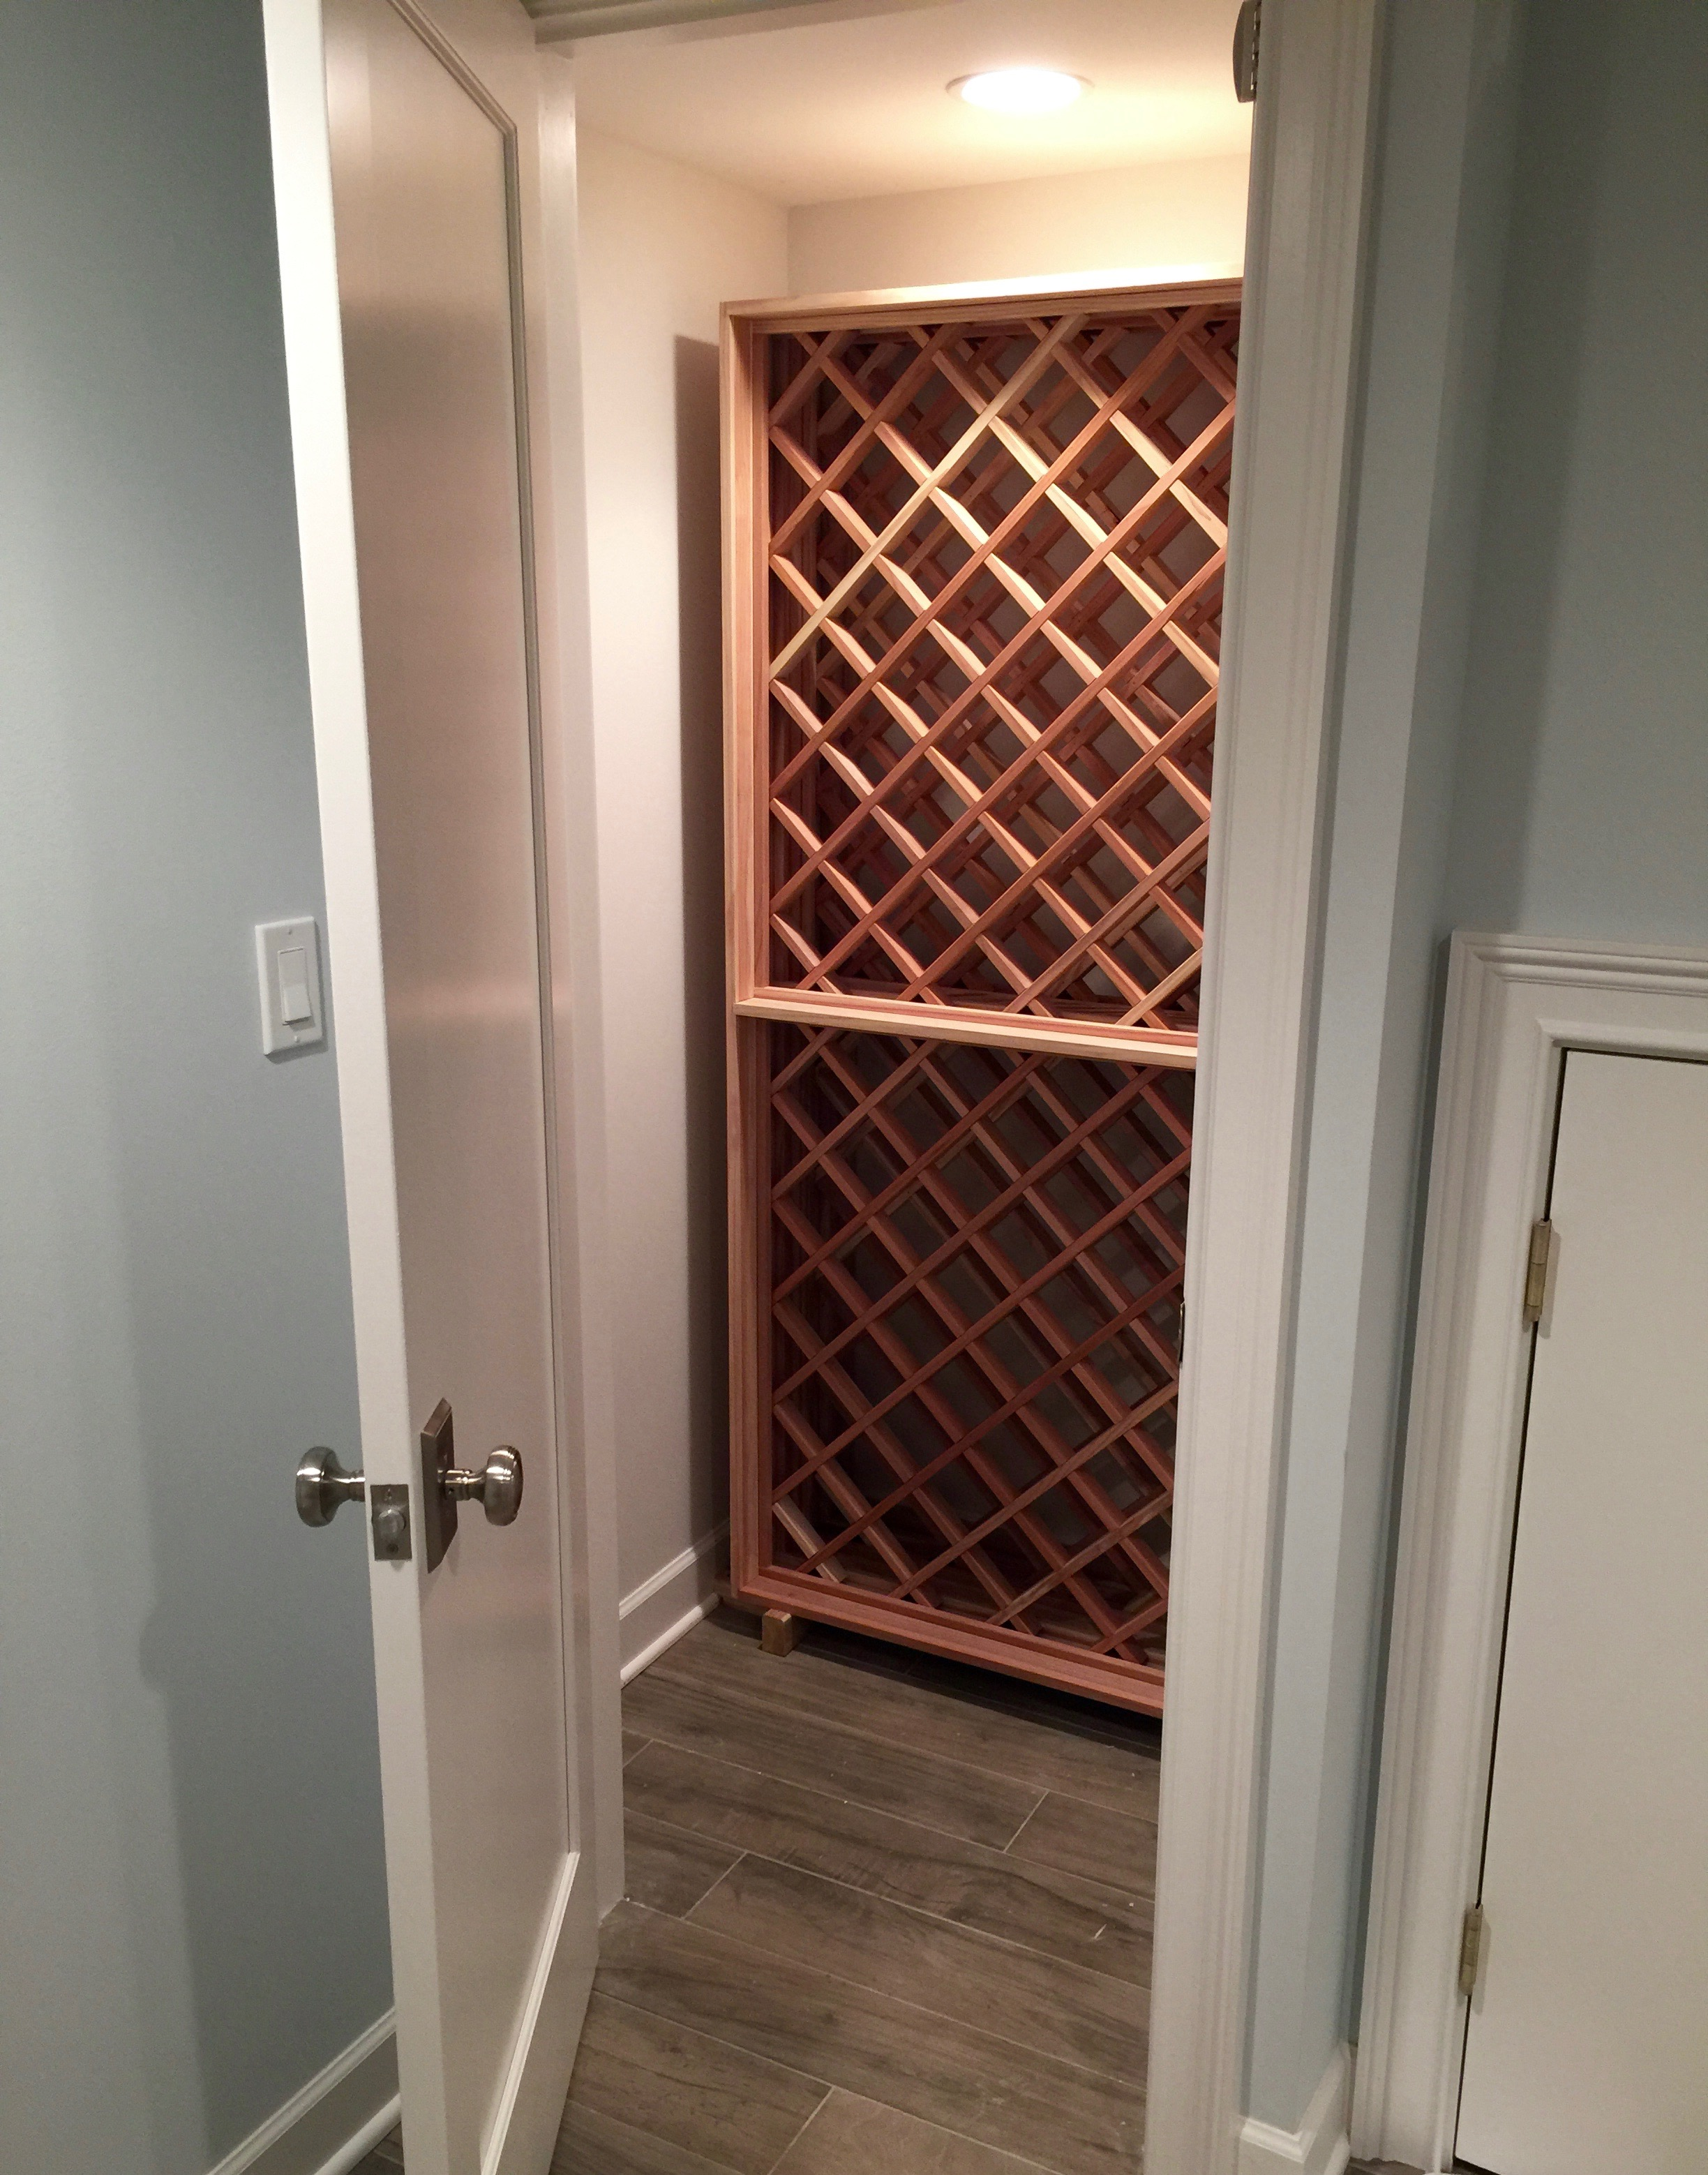 Remember all that stuff I said about creating more living space in the basement? There are some important storage exceptions :)